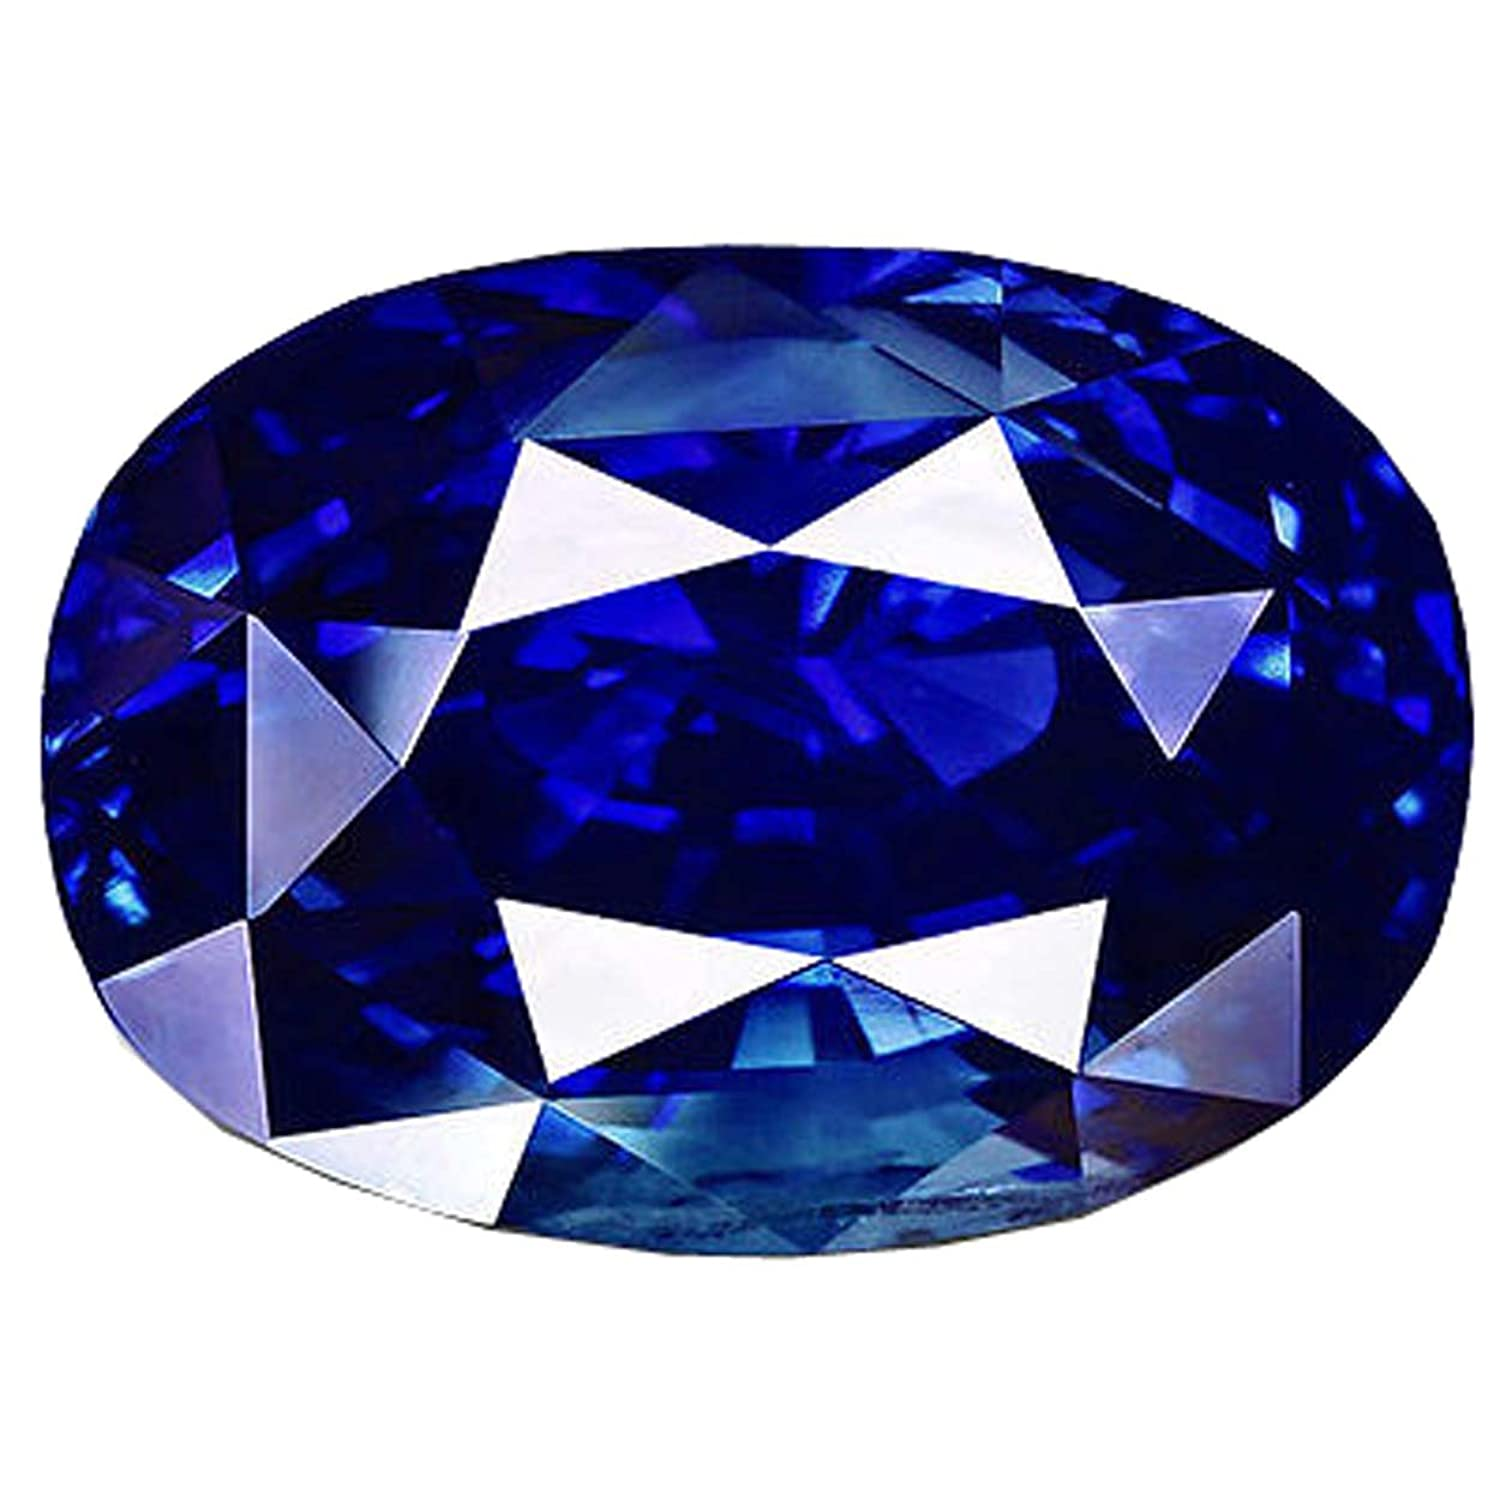 gemstone grs gemstones cut cushion ebay loading itm sapphire loose certificate image is blue